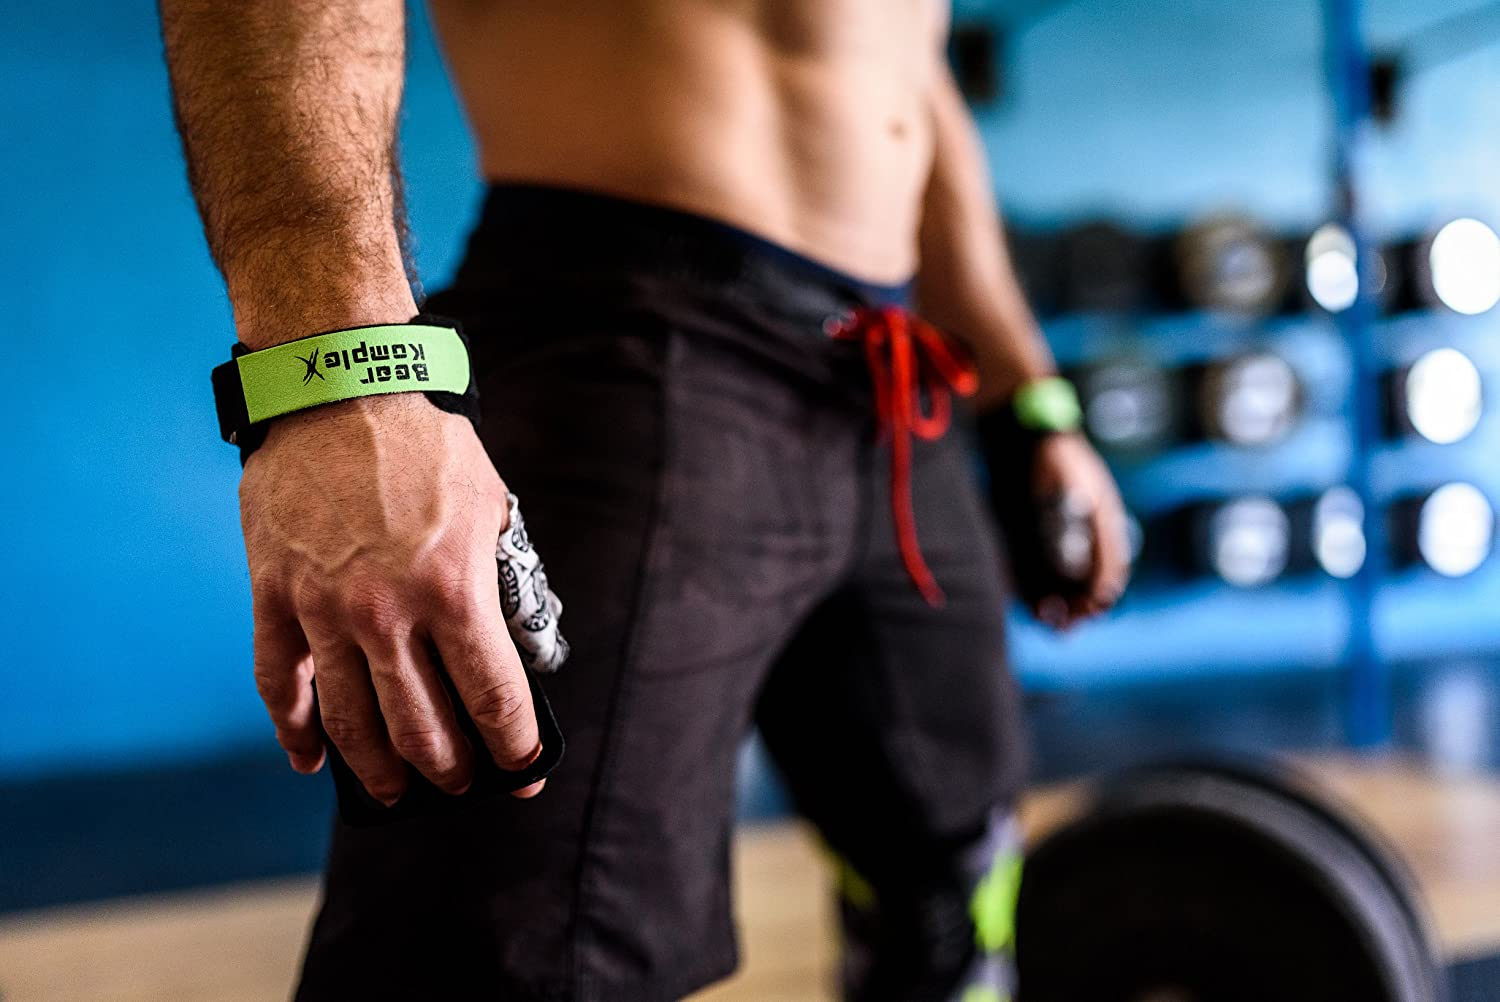 Exercise LRG 2hole Ylw And More Cross Training Chin ups Bear KompleX 2 Hole Gymnastics Grips Are Great for WODs Weight Lifting Protect Your Palms from rips And Tears pullups Kettlebells